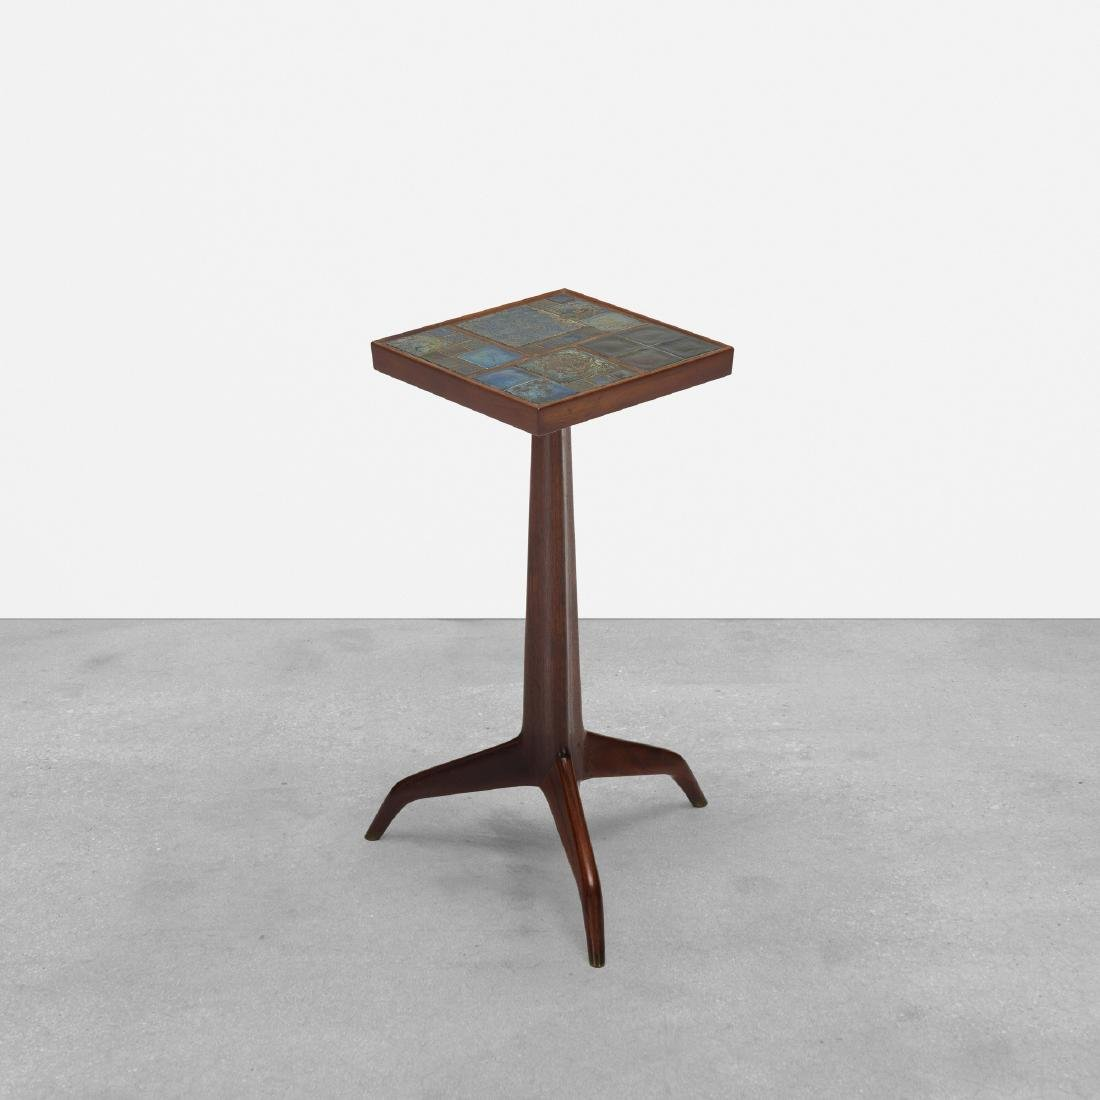 Edward Wormley, Janus occasional table, model 6047